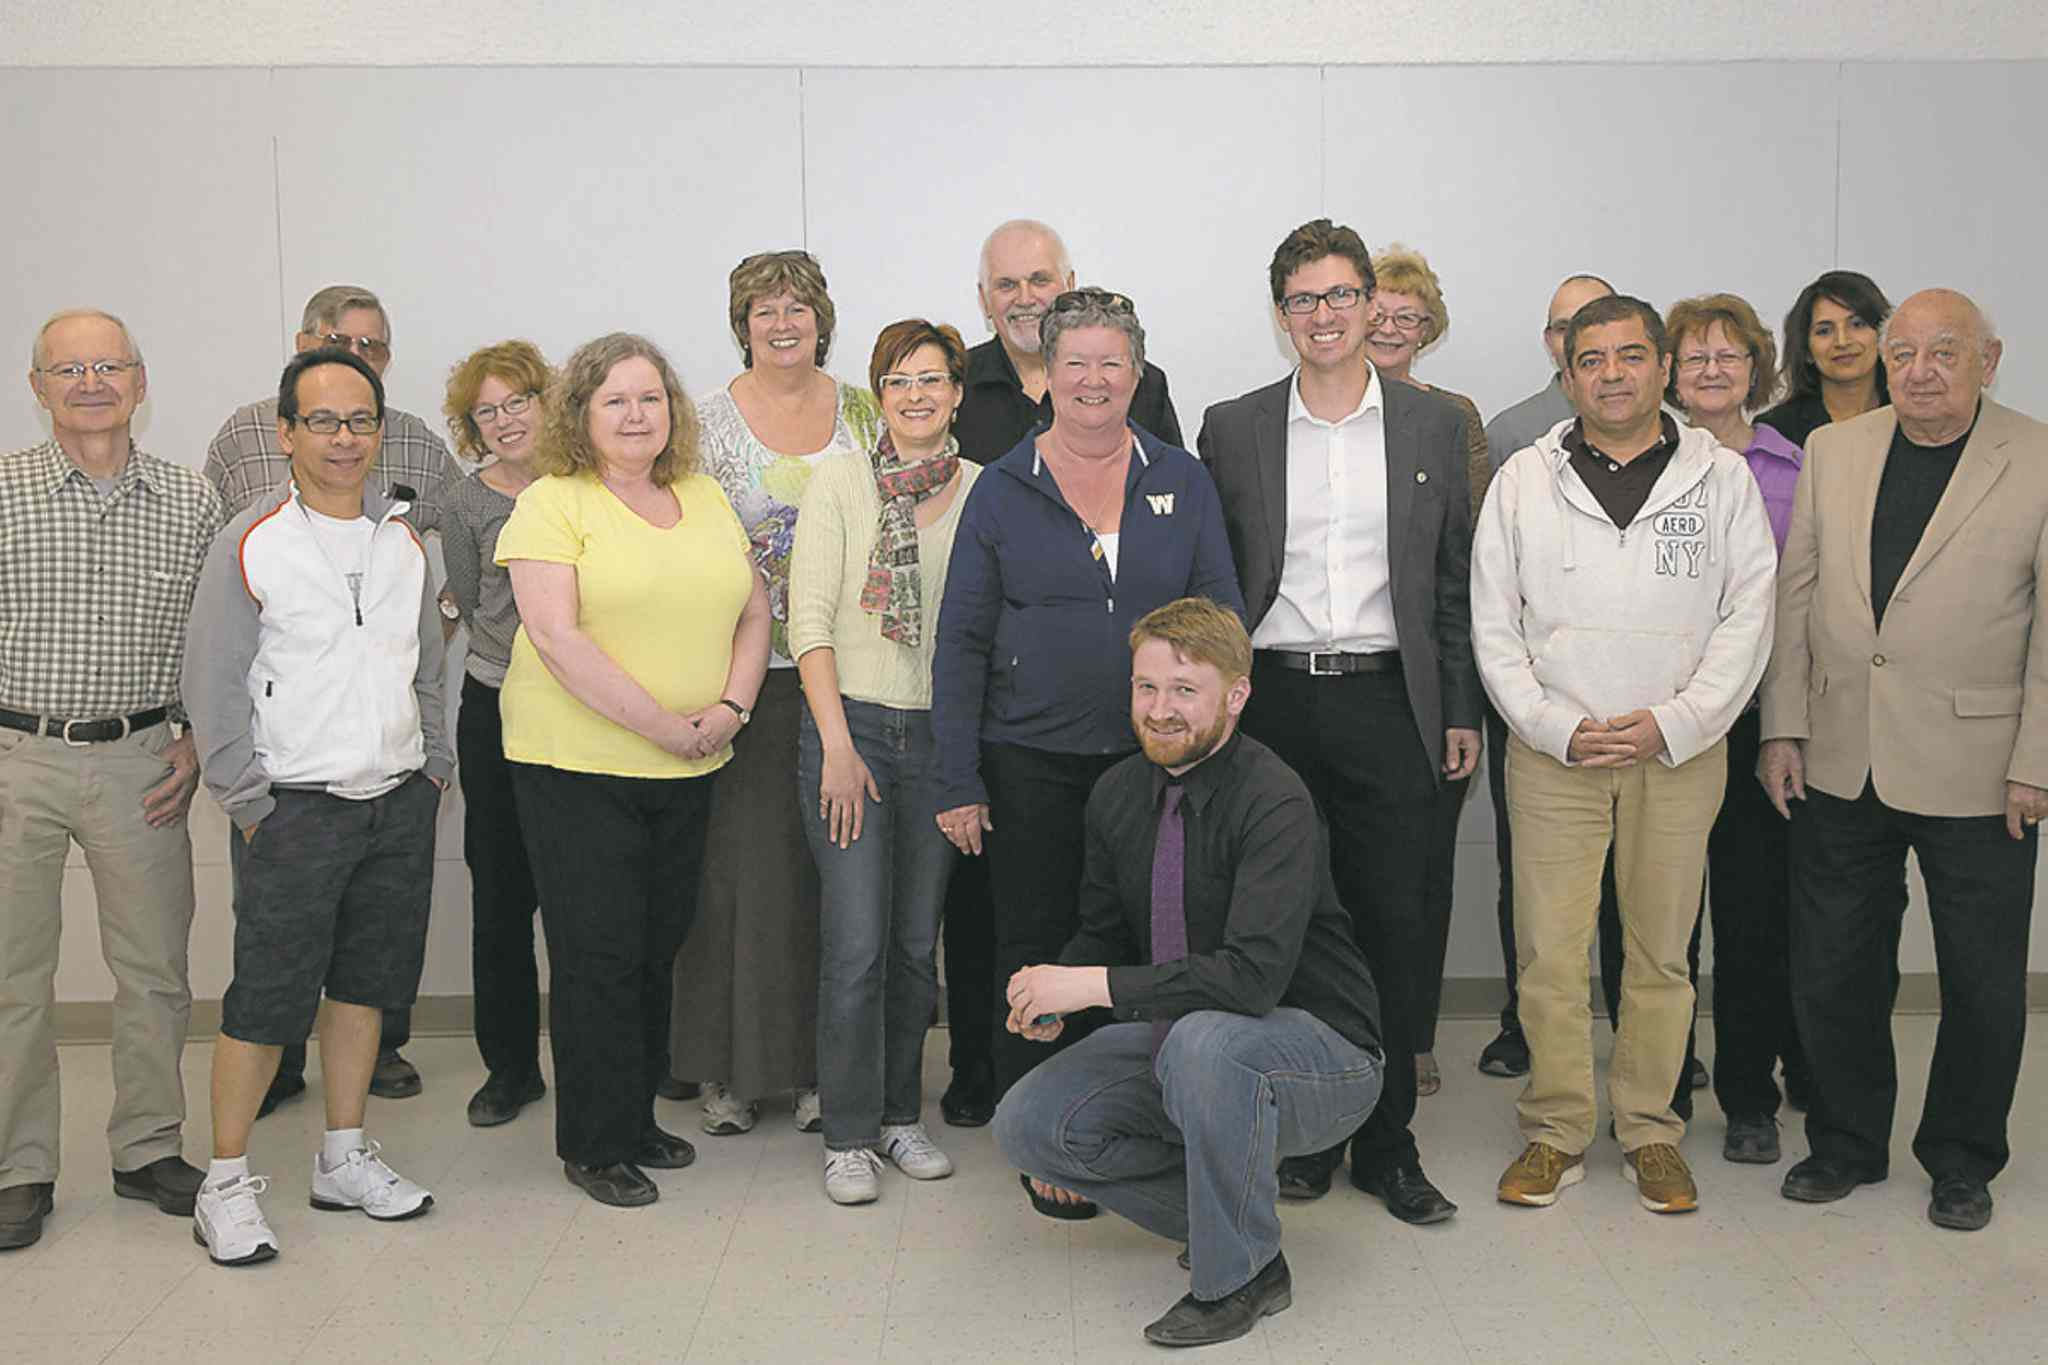 Matt Allard (centre) and executive assistant Ryan Palmquist (kneeling) are pictured with Royalwood residents at a town hall meeting on April 14.